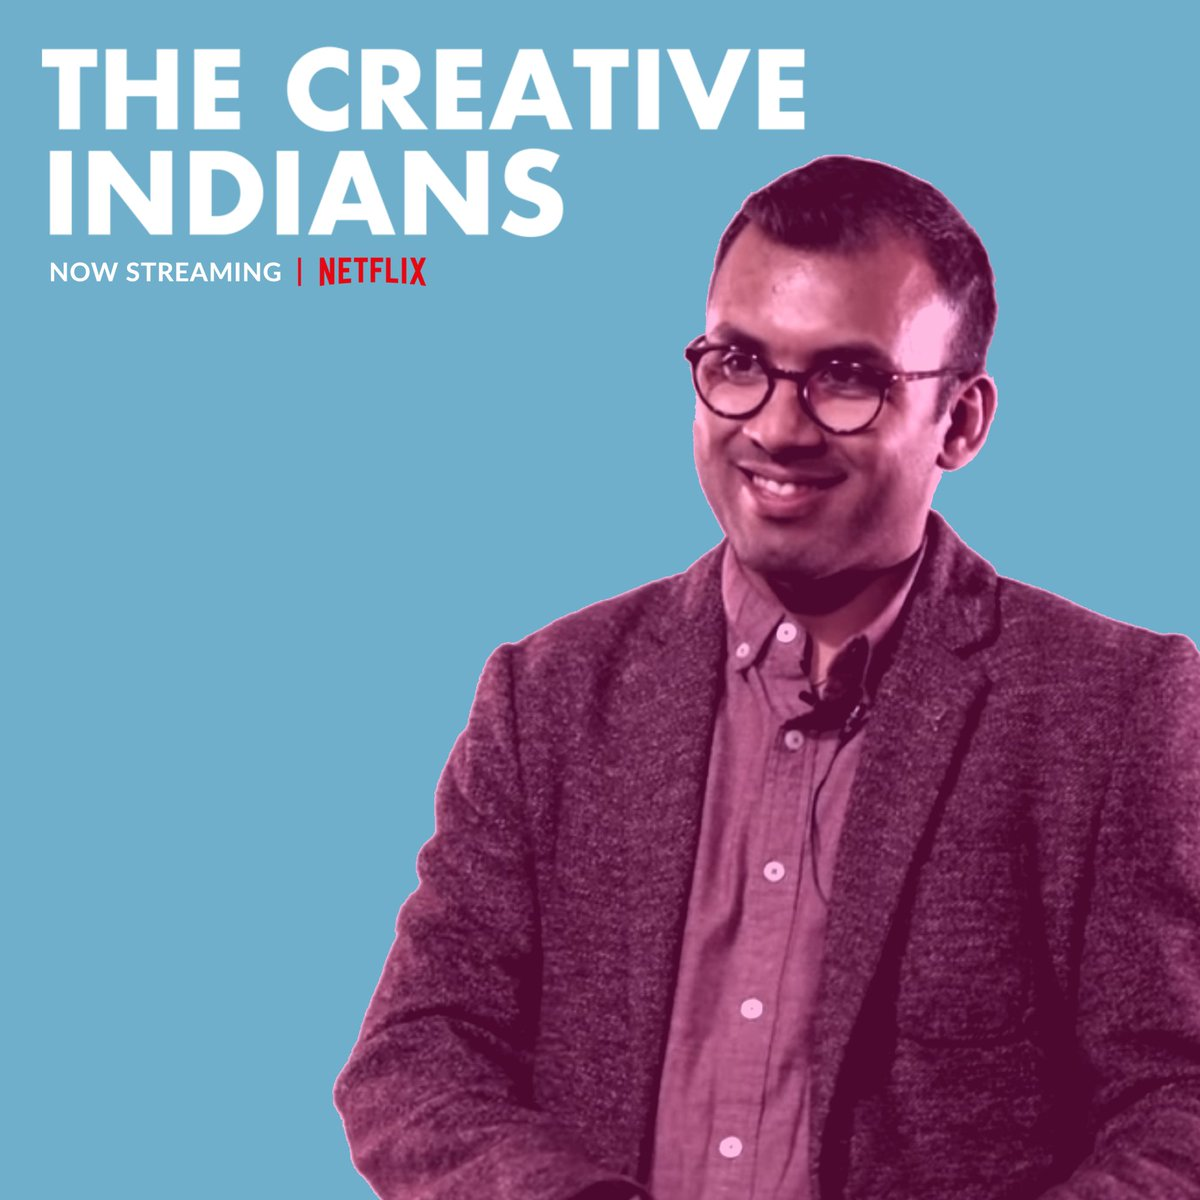 I make a (very) brief cameo in the new season of #TheCreativeIndians on #Netflix! Check out the episode on #Oscar-winning #composer @arrahman, Dr. @adamjgreig and their magnificent school for #music, @KMMC_Chennai. . #streamingnow #kmmc #chennai #india #education #tech #arrahman